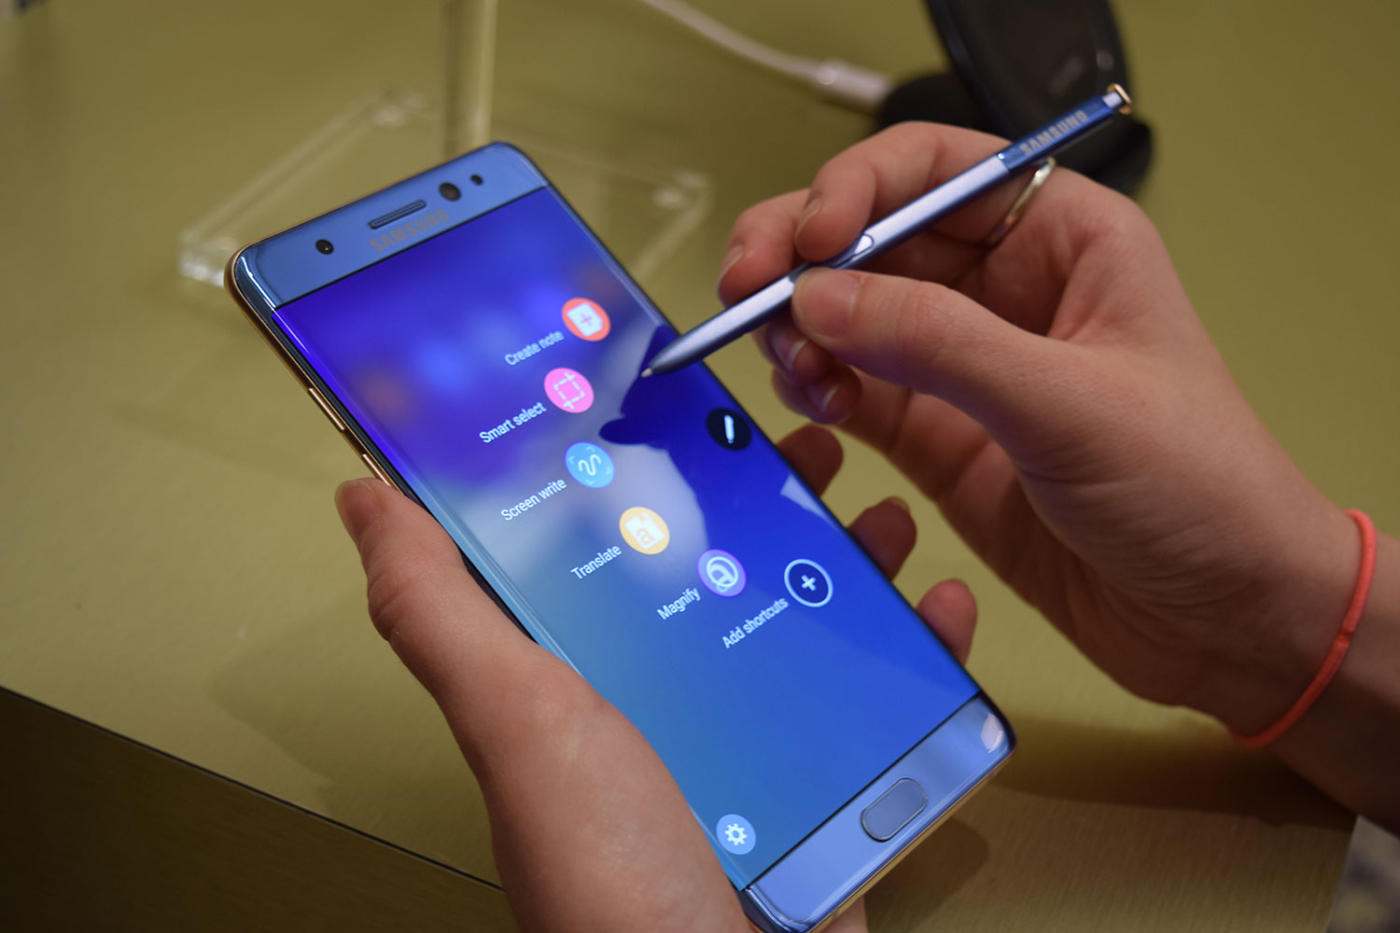 The reconditioned Galaxy Note 7 will be available in South Korea